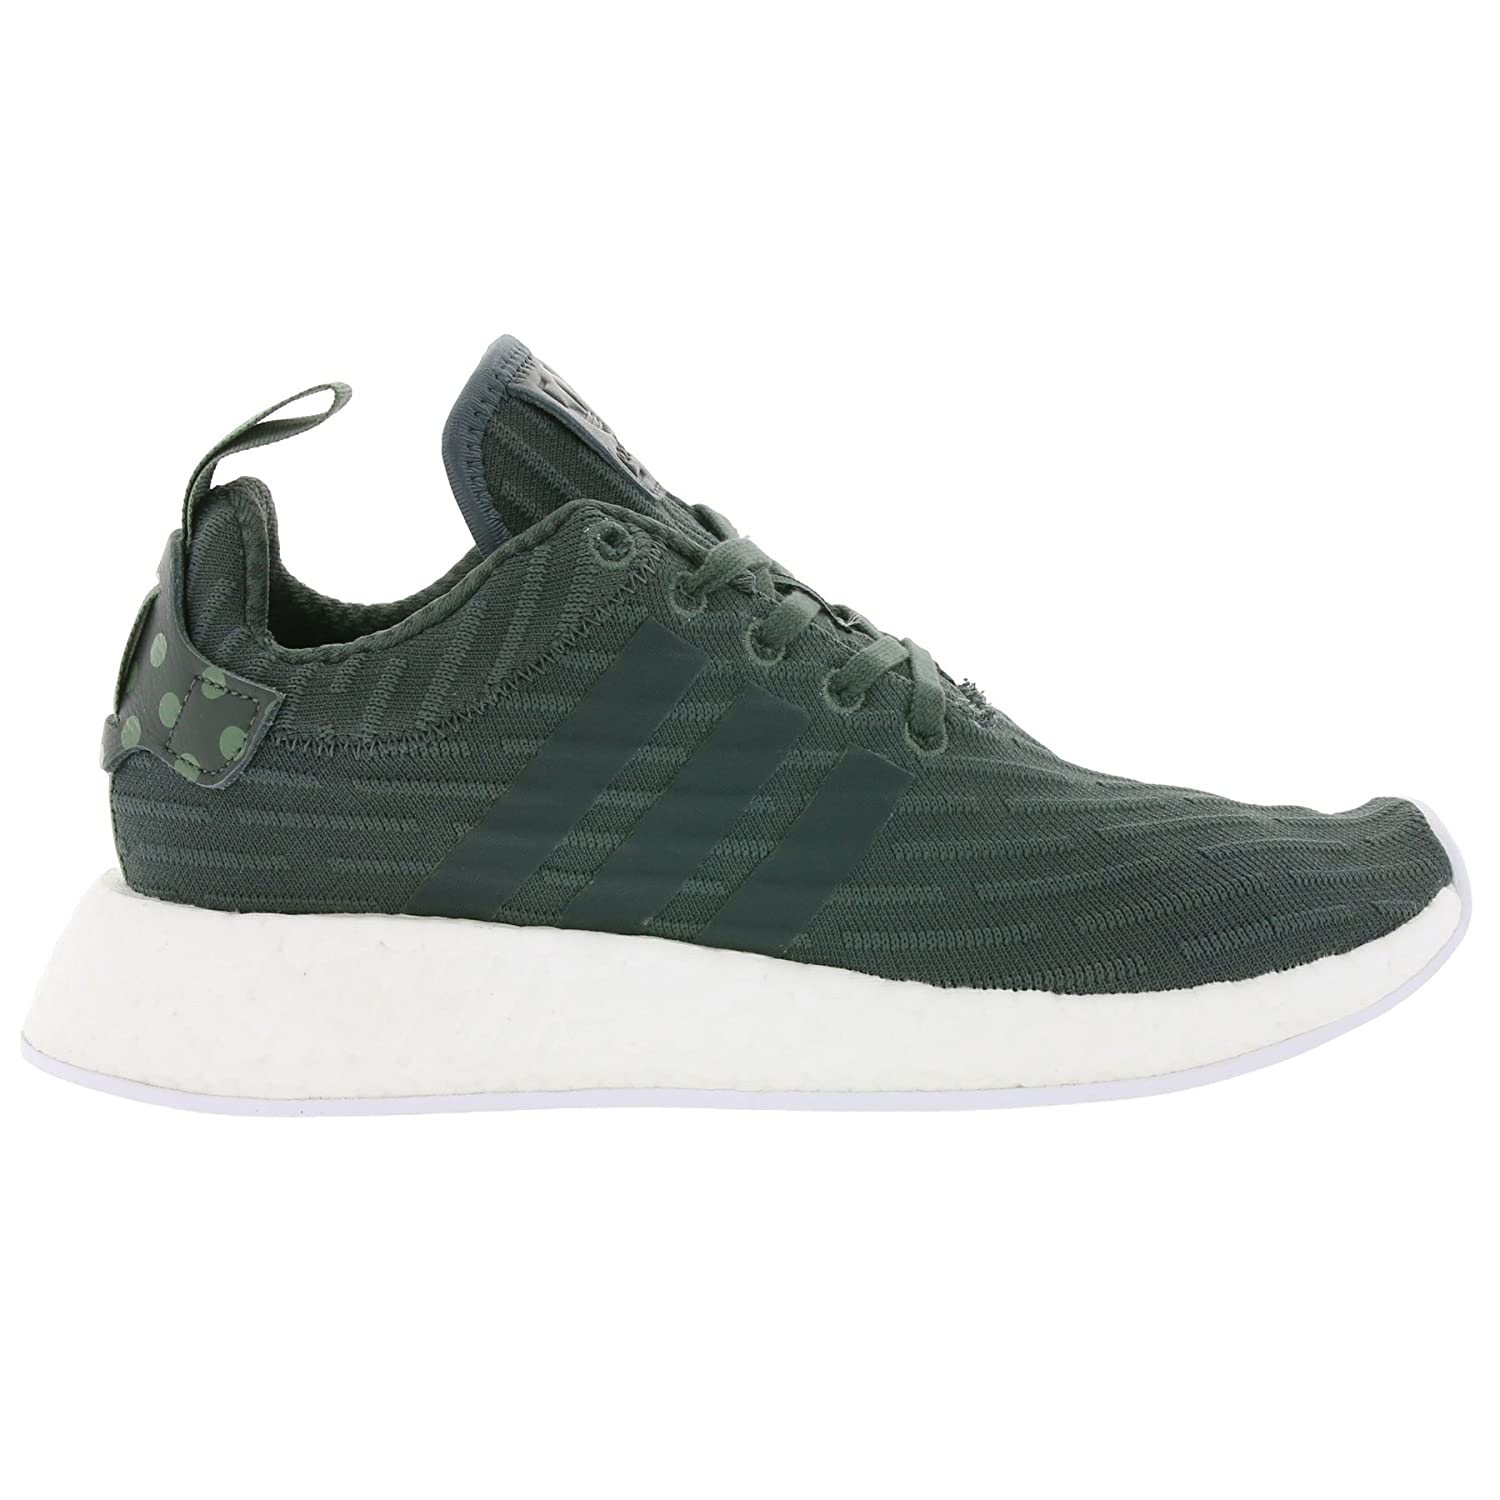 olive green nmd adidas womens